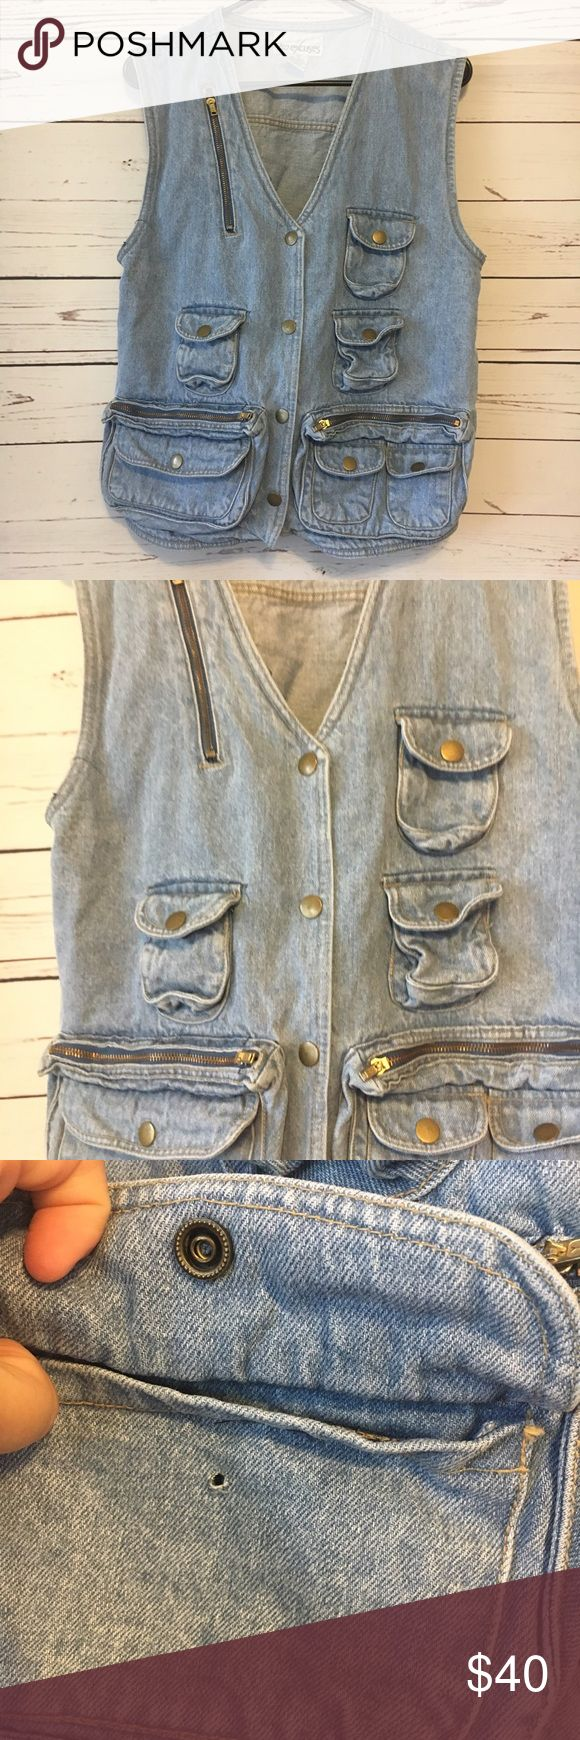 Vintage utility vest festival concert travel jean Vintage jean vest with purse like pockets. Perfect for festivals and concerts. This is best is like a fanny pack or purse. It has all the pockets you need. One bottom pocket does not snap but still holds things. As shown. Pocket big enough at least for an iPhone 6s with case on.  Keep your valuables close and safe while looking awesome. 18 arm to arm and 24 shoulder to hem. Vintage Jackets & Coats Utility Jackets